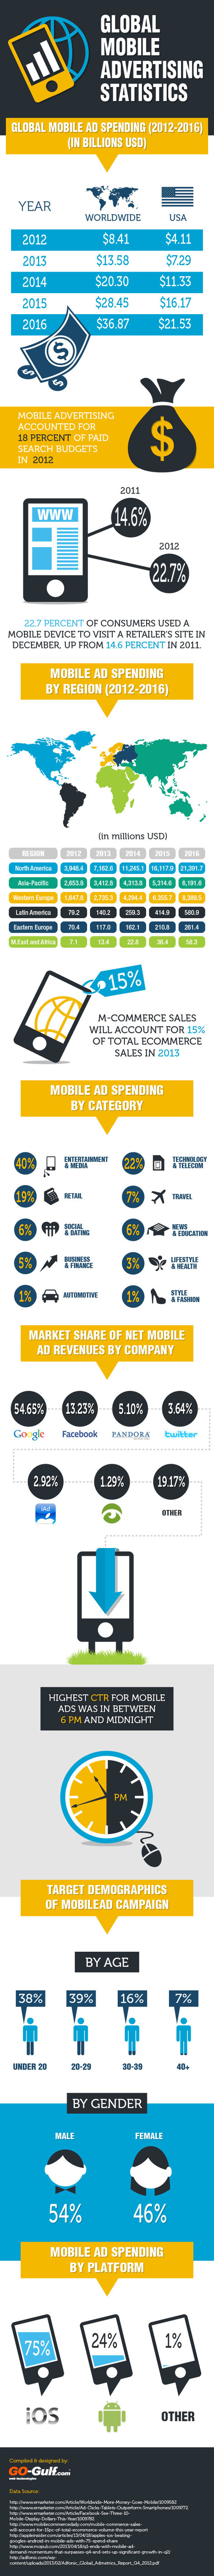 Global Mobile Advertising Stats - an infographic /@BerriePelser | #140confMTL | Scoop.it